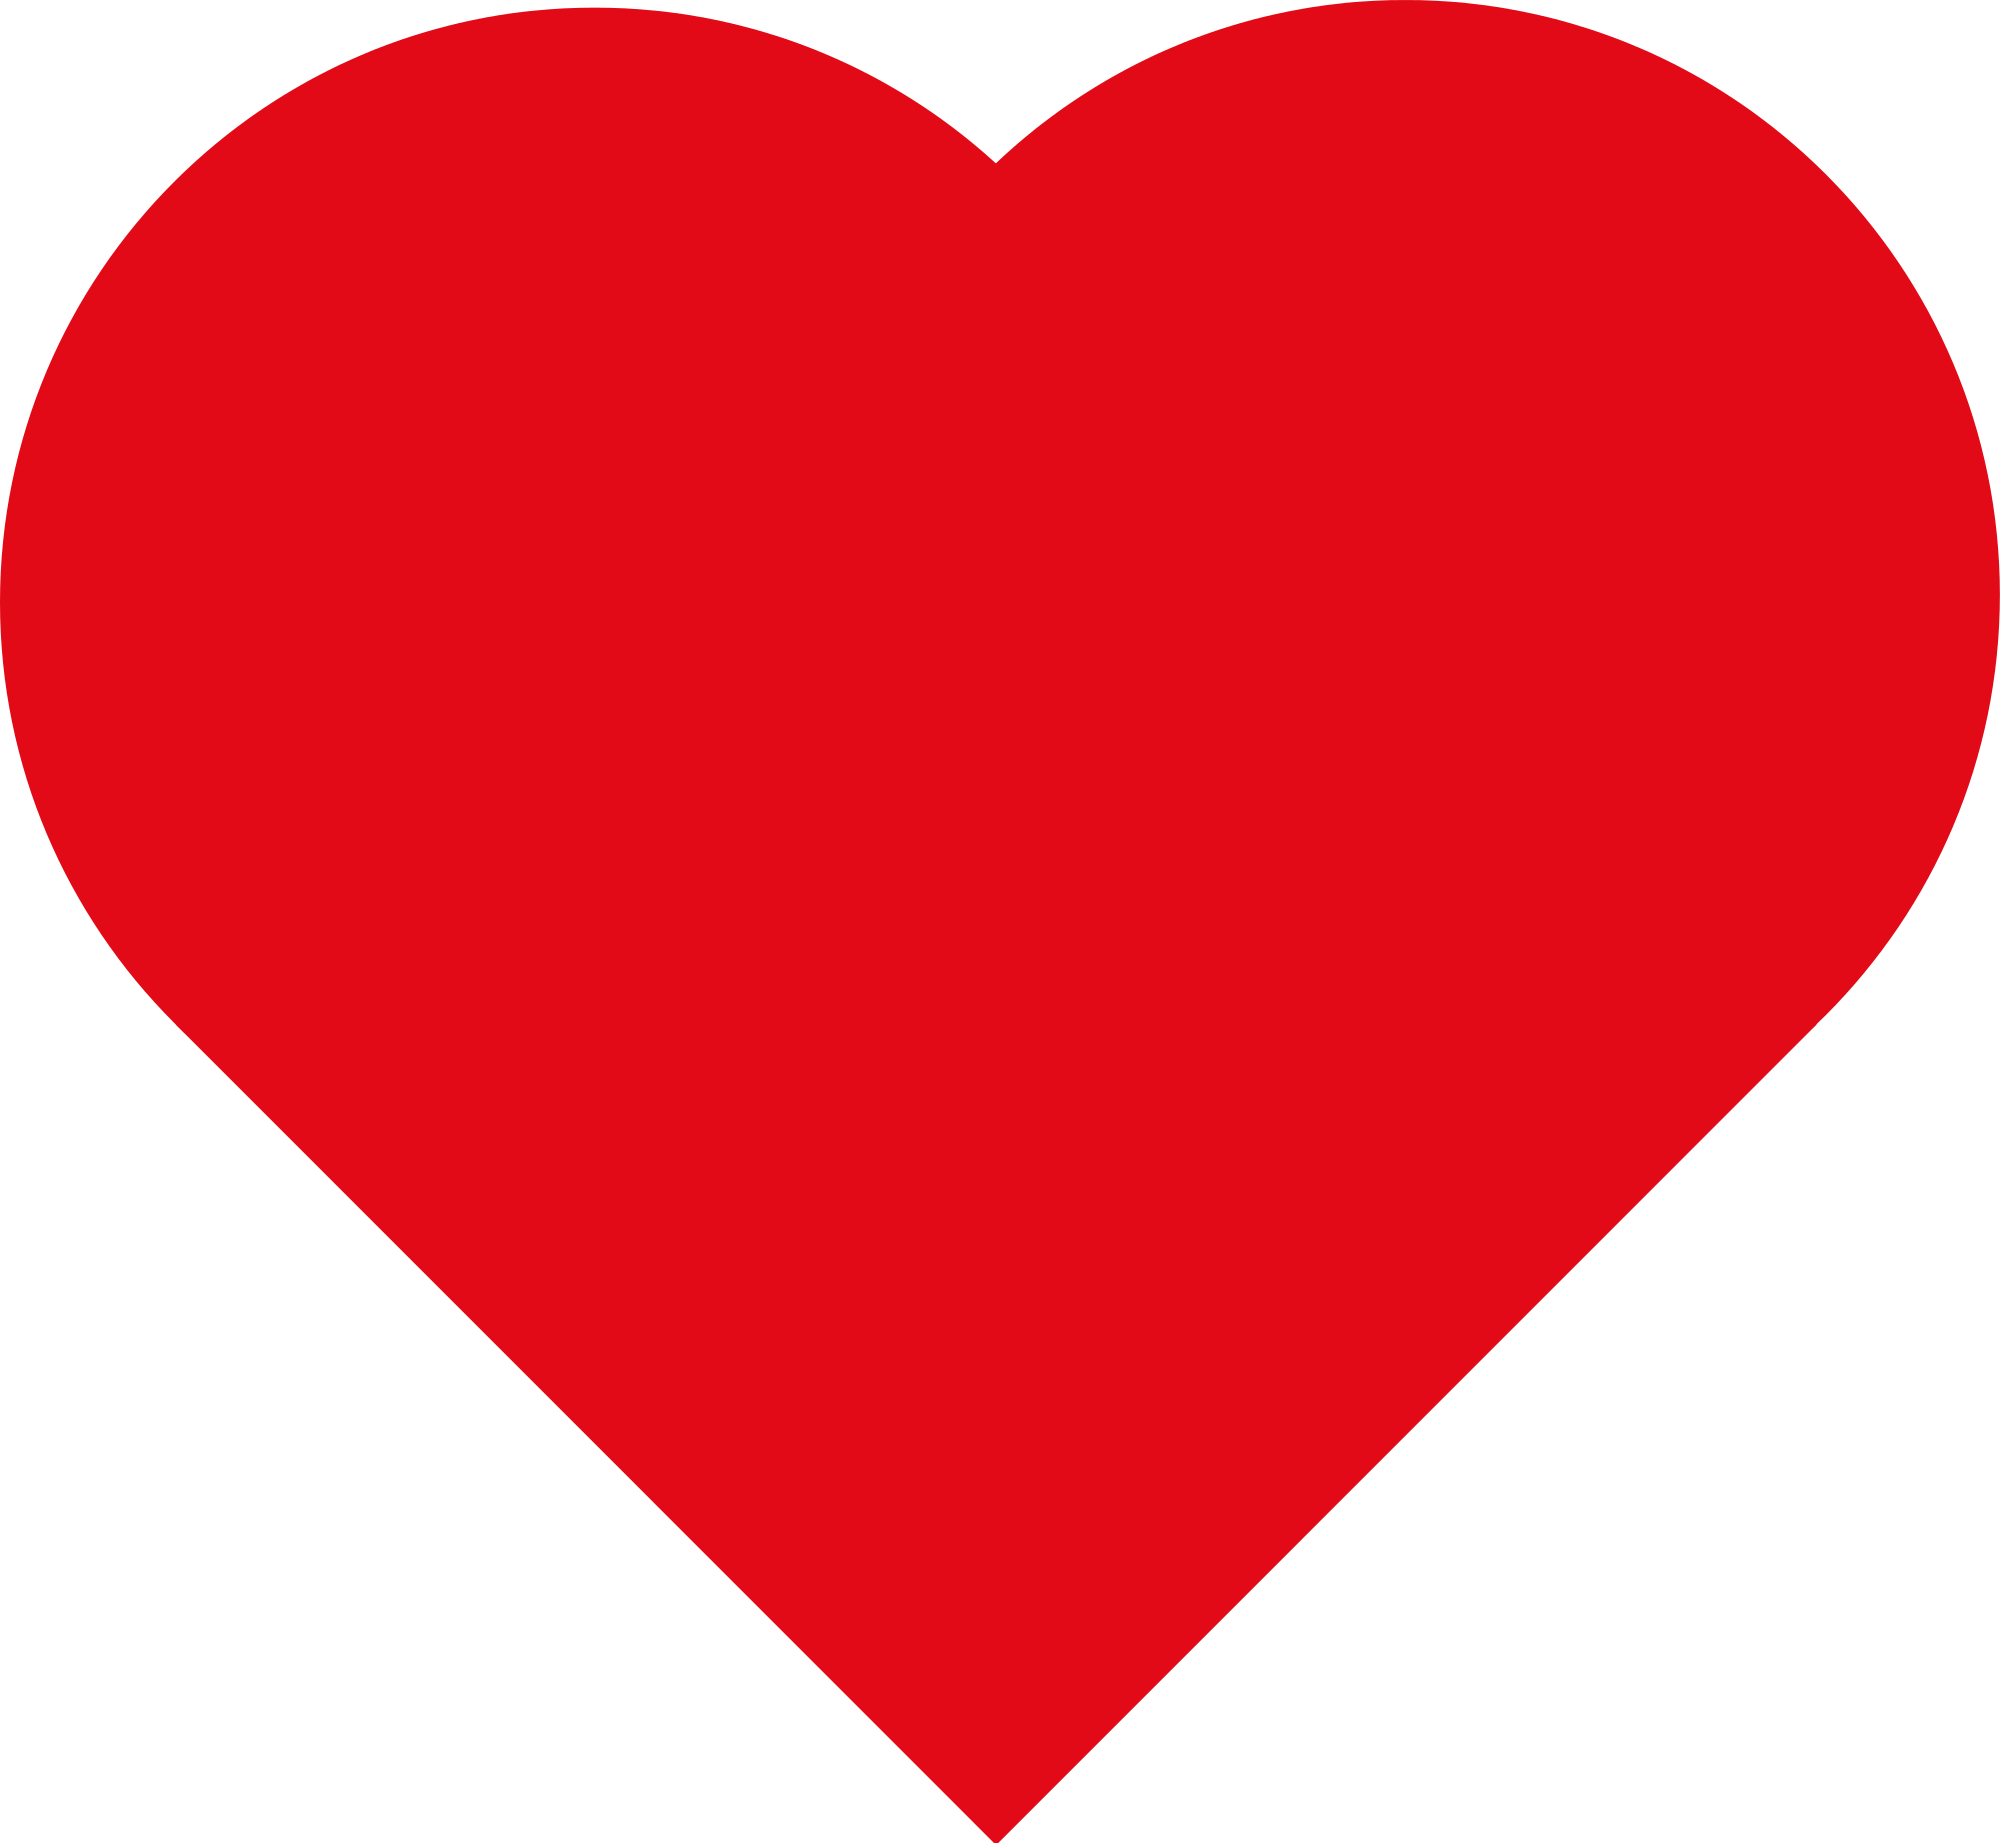 Love transparent image mart. Red heart icon png banner black and white